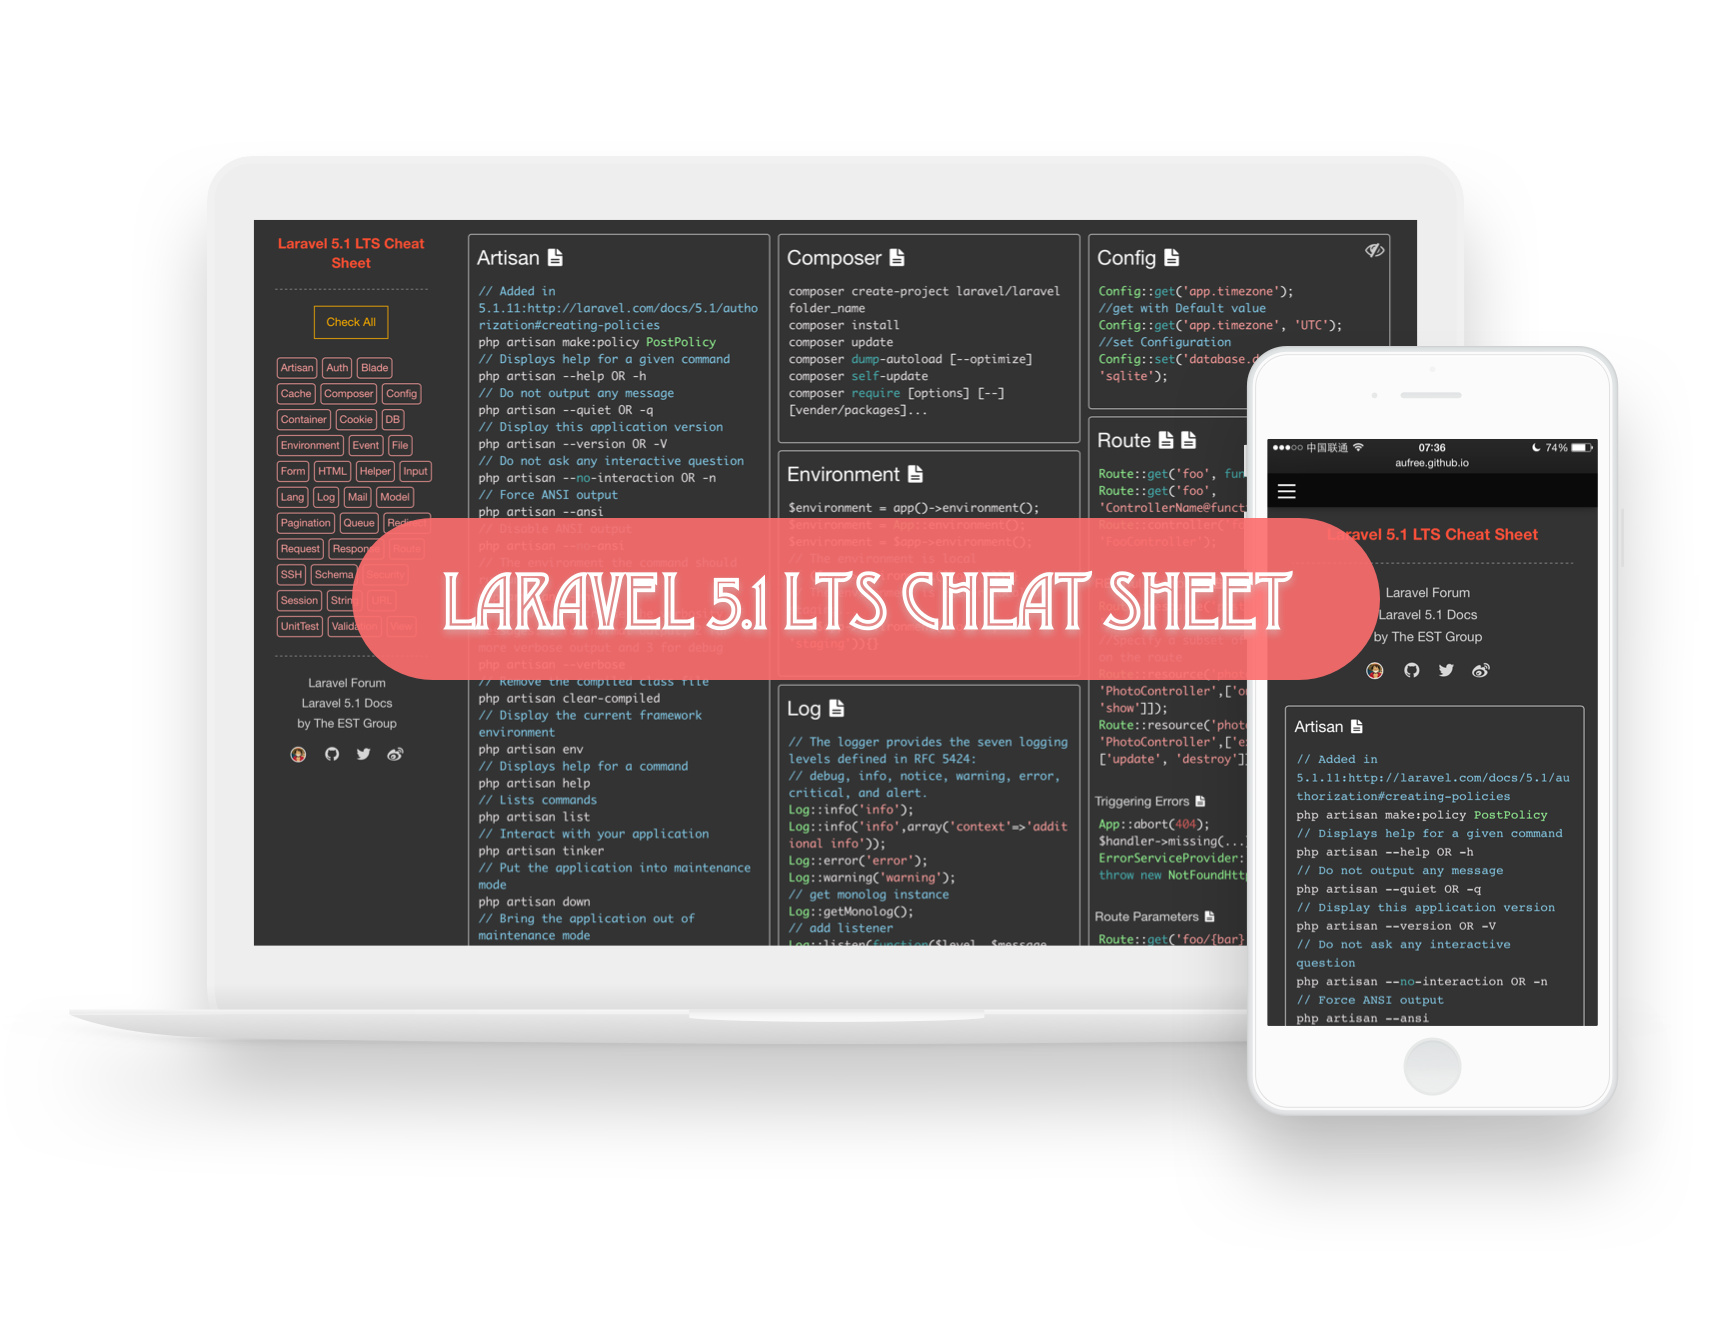 Laravel 5 Cheat Sheet